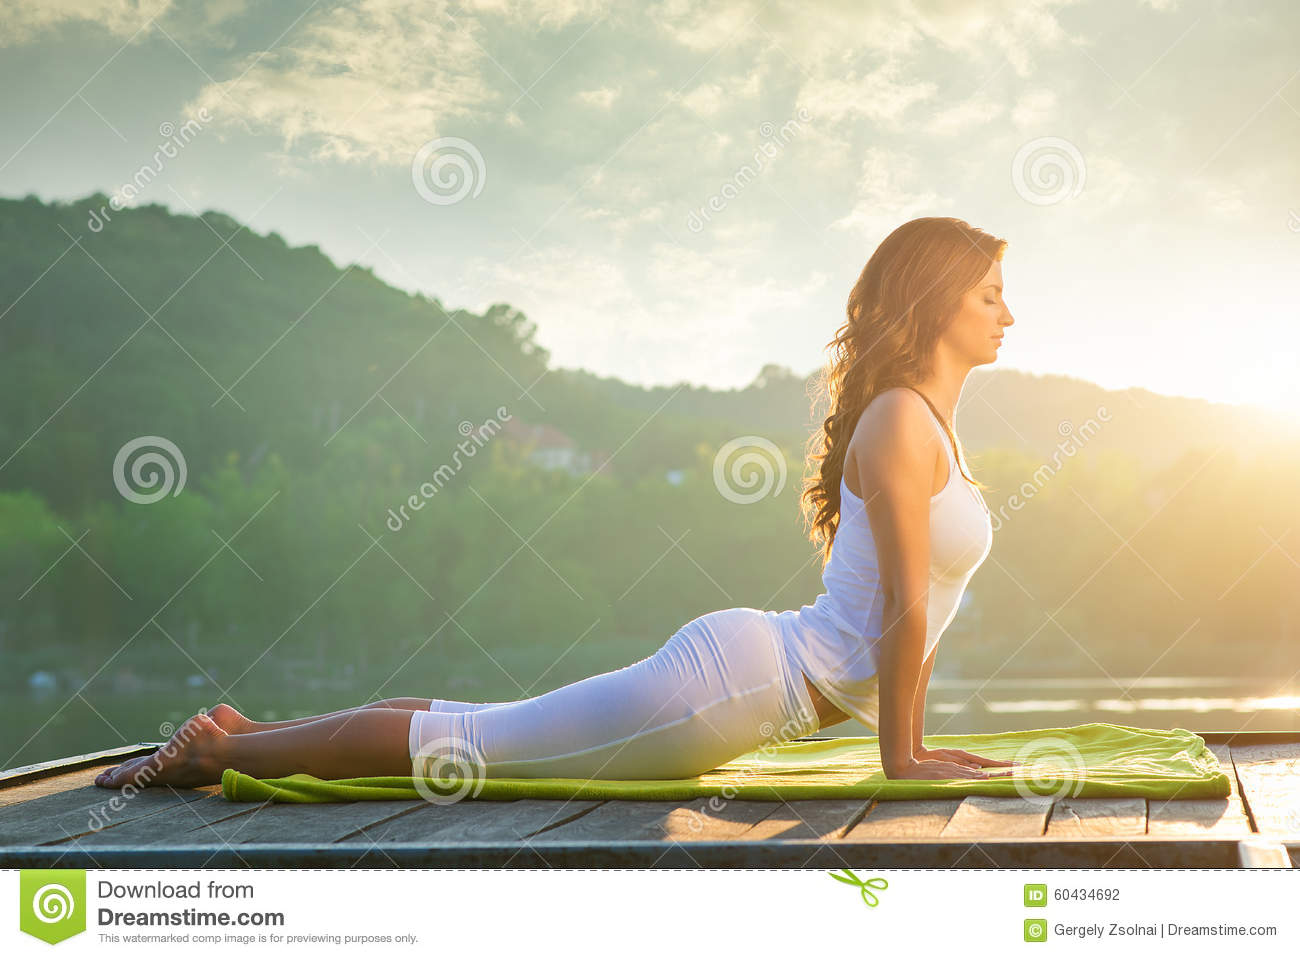 Woman doing yoga on the lake